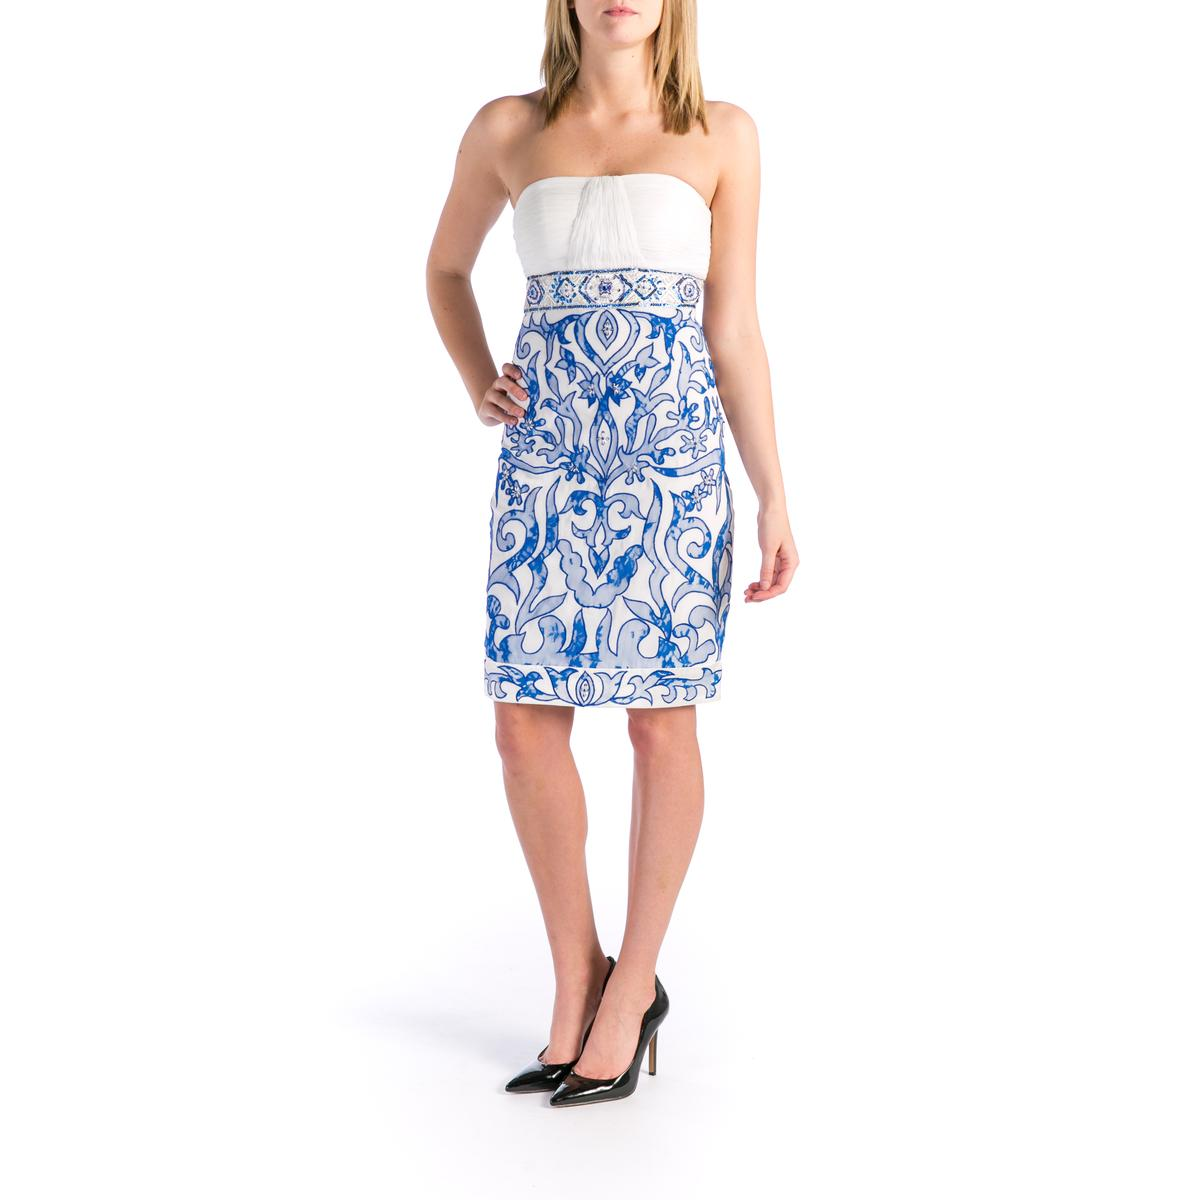 sue wong 1734 womens ivory beaded strapless cocktail